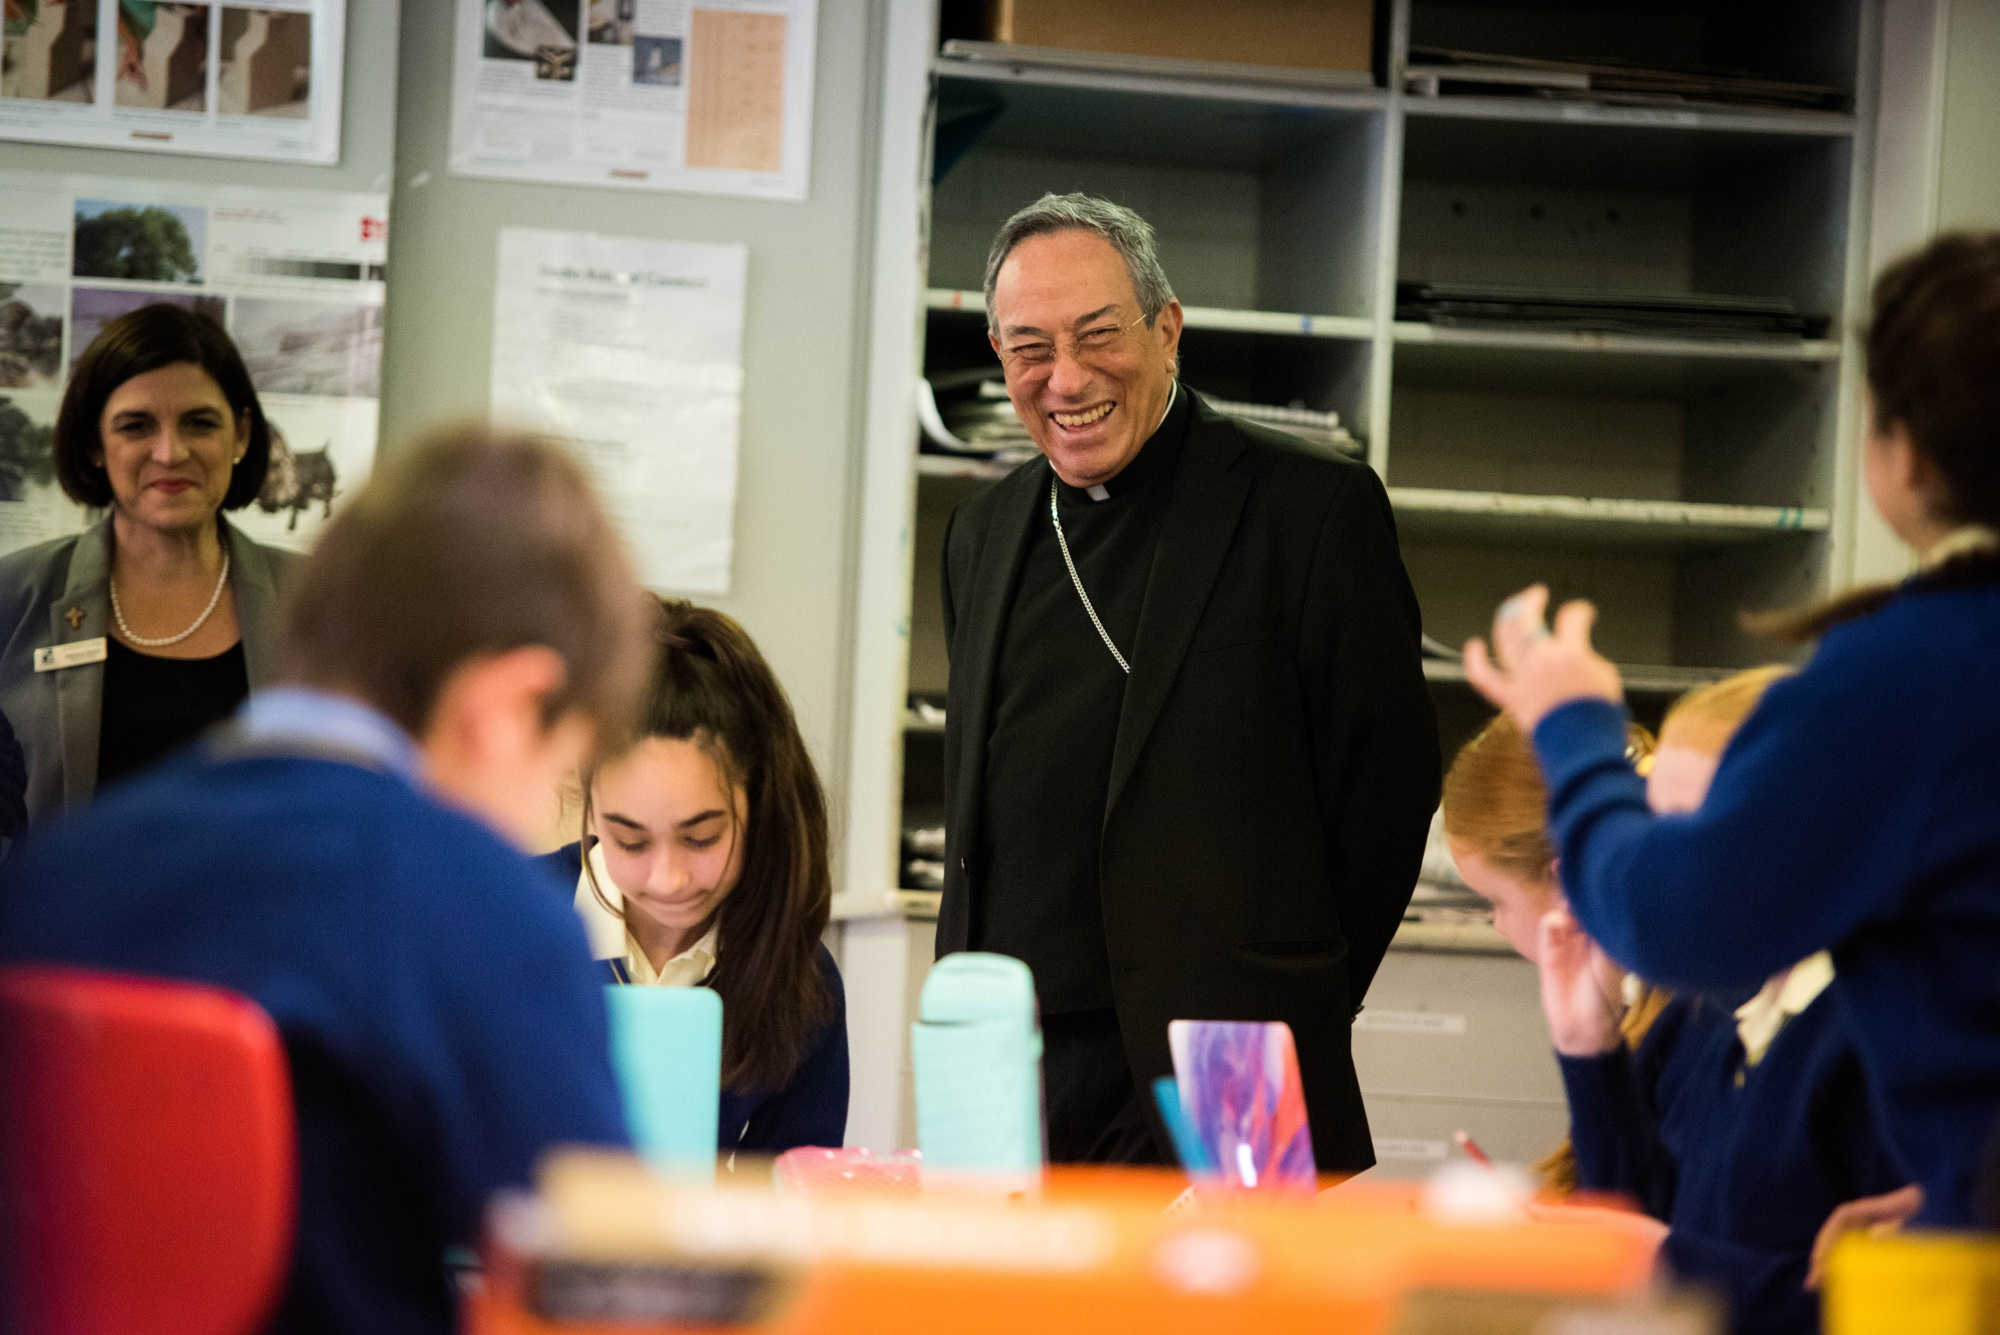 Cardinal Maradiaga talks with students at St Norbert College. Picture: Chris Richards-Scully